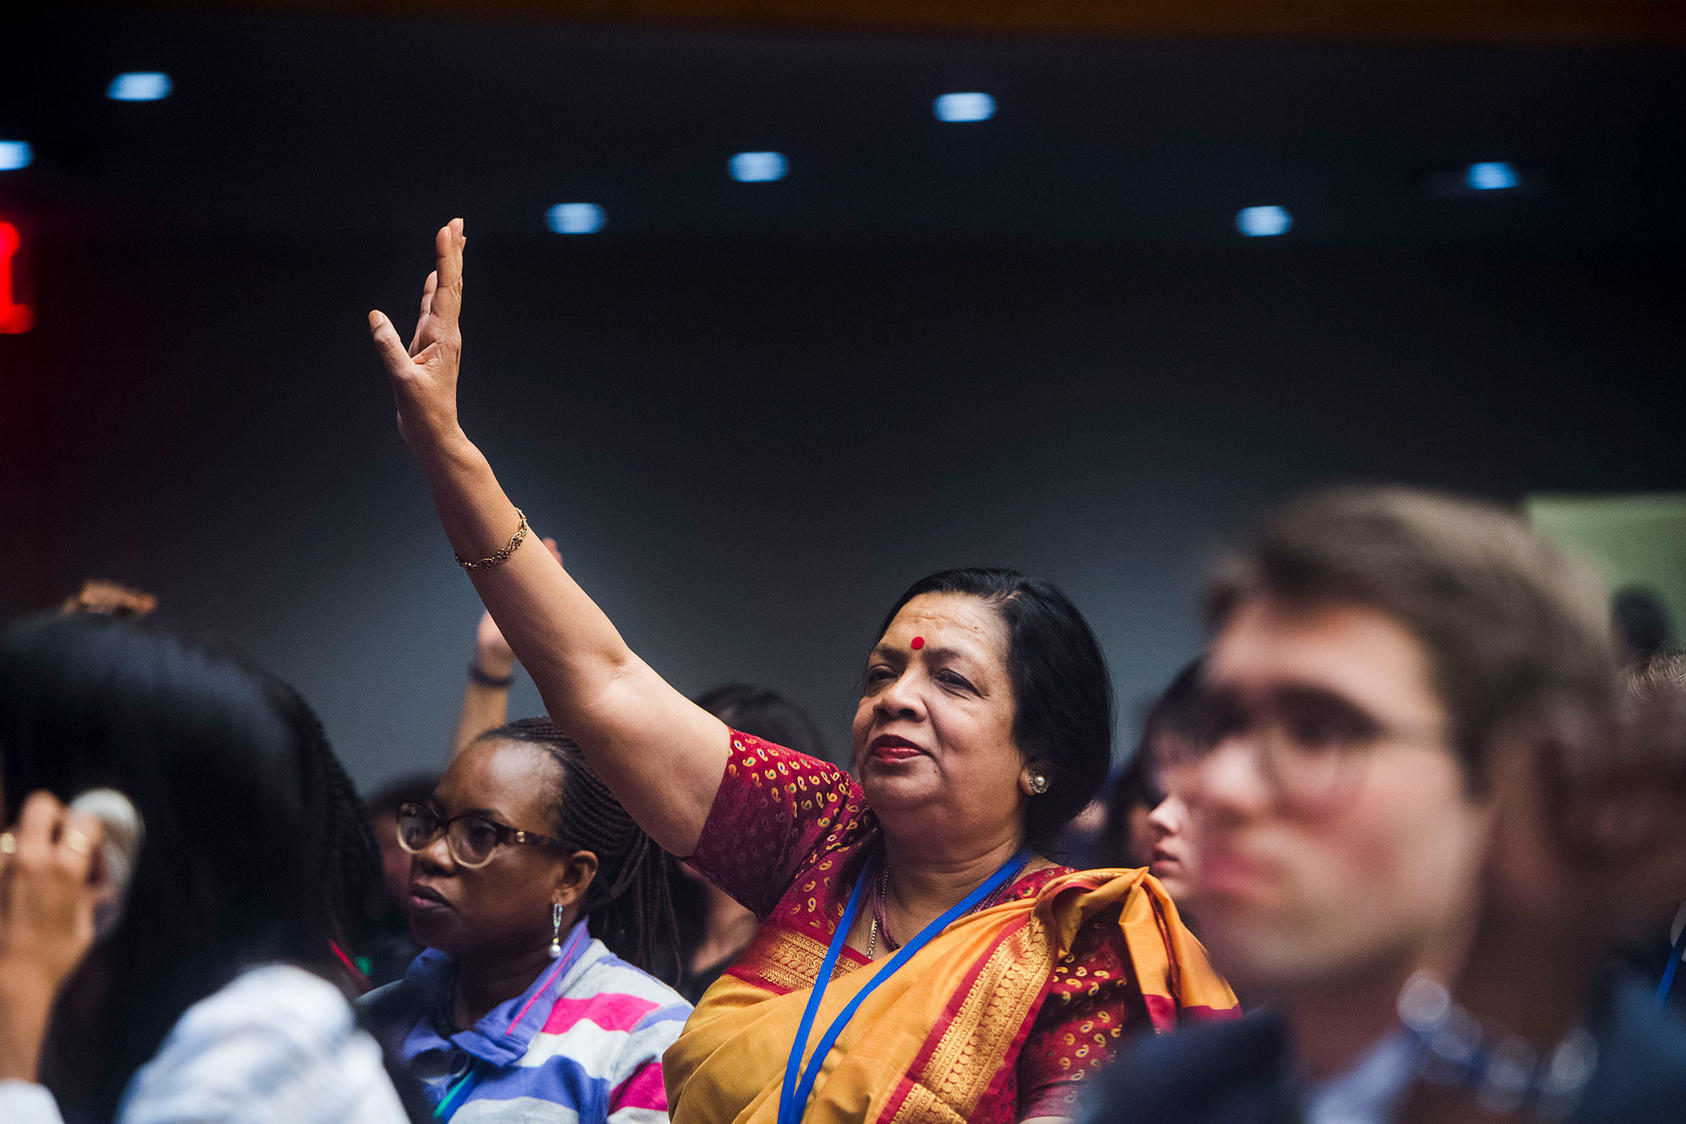 Groups gather for the CSW63 Townhall Meeting of Civil Society and United Nations Secretary-General António Guterres (Flickr/UN Women)